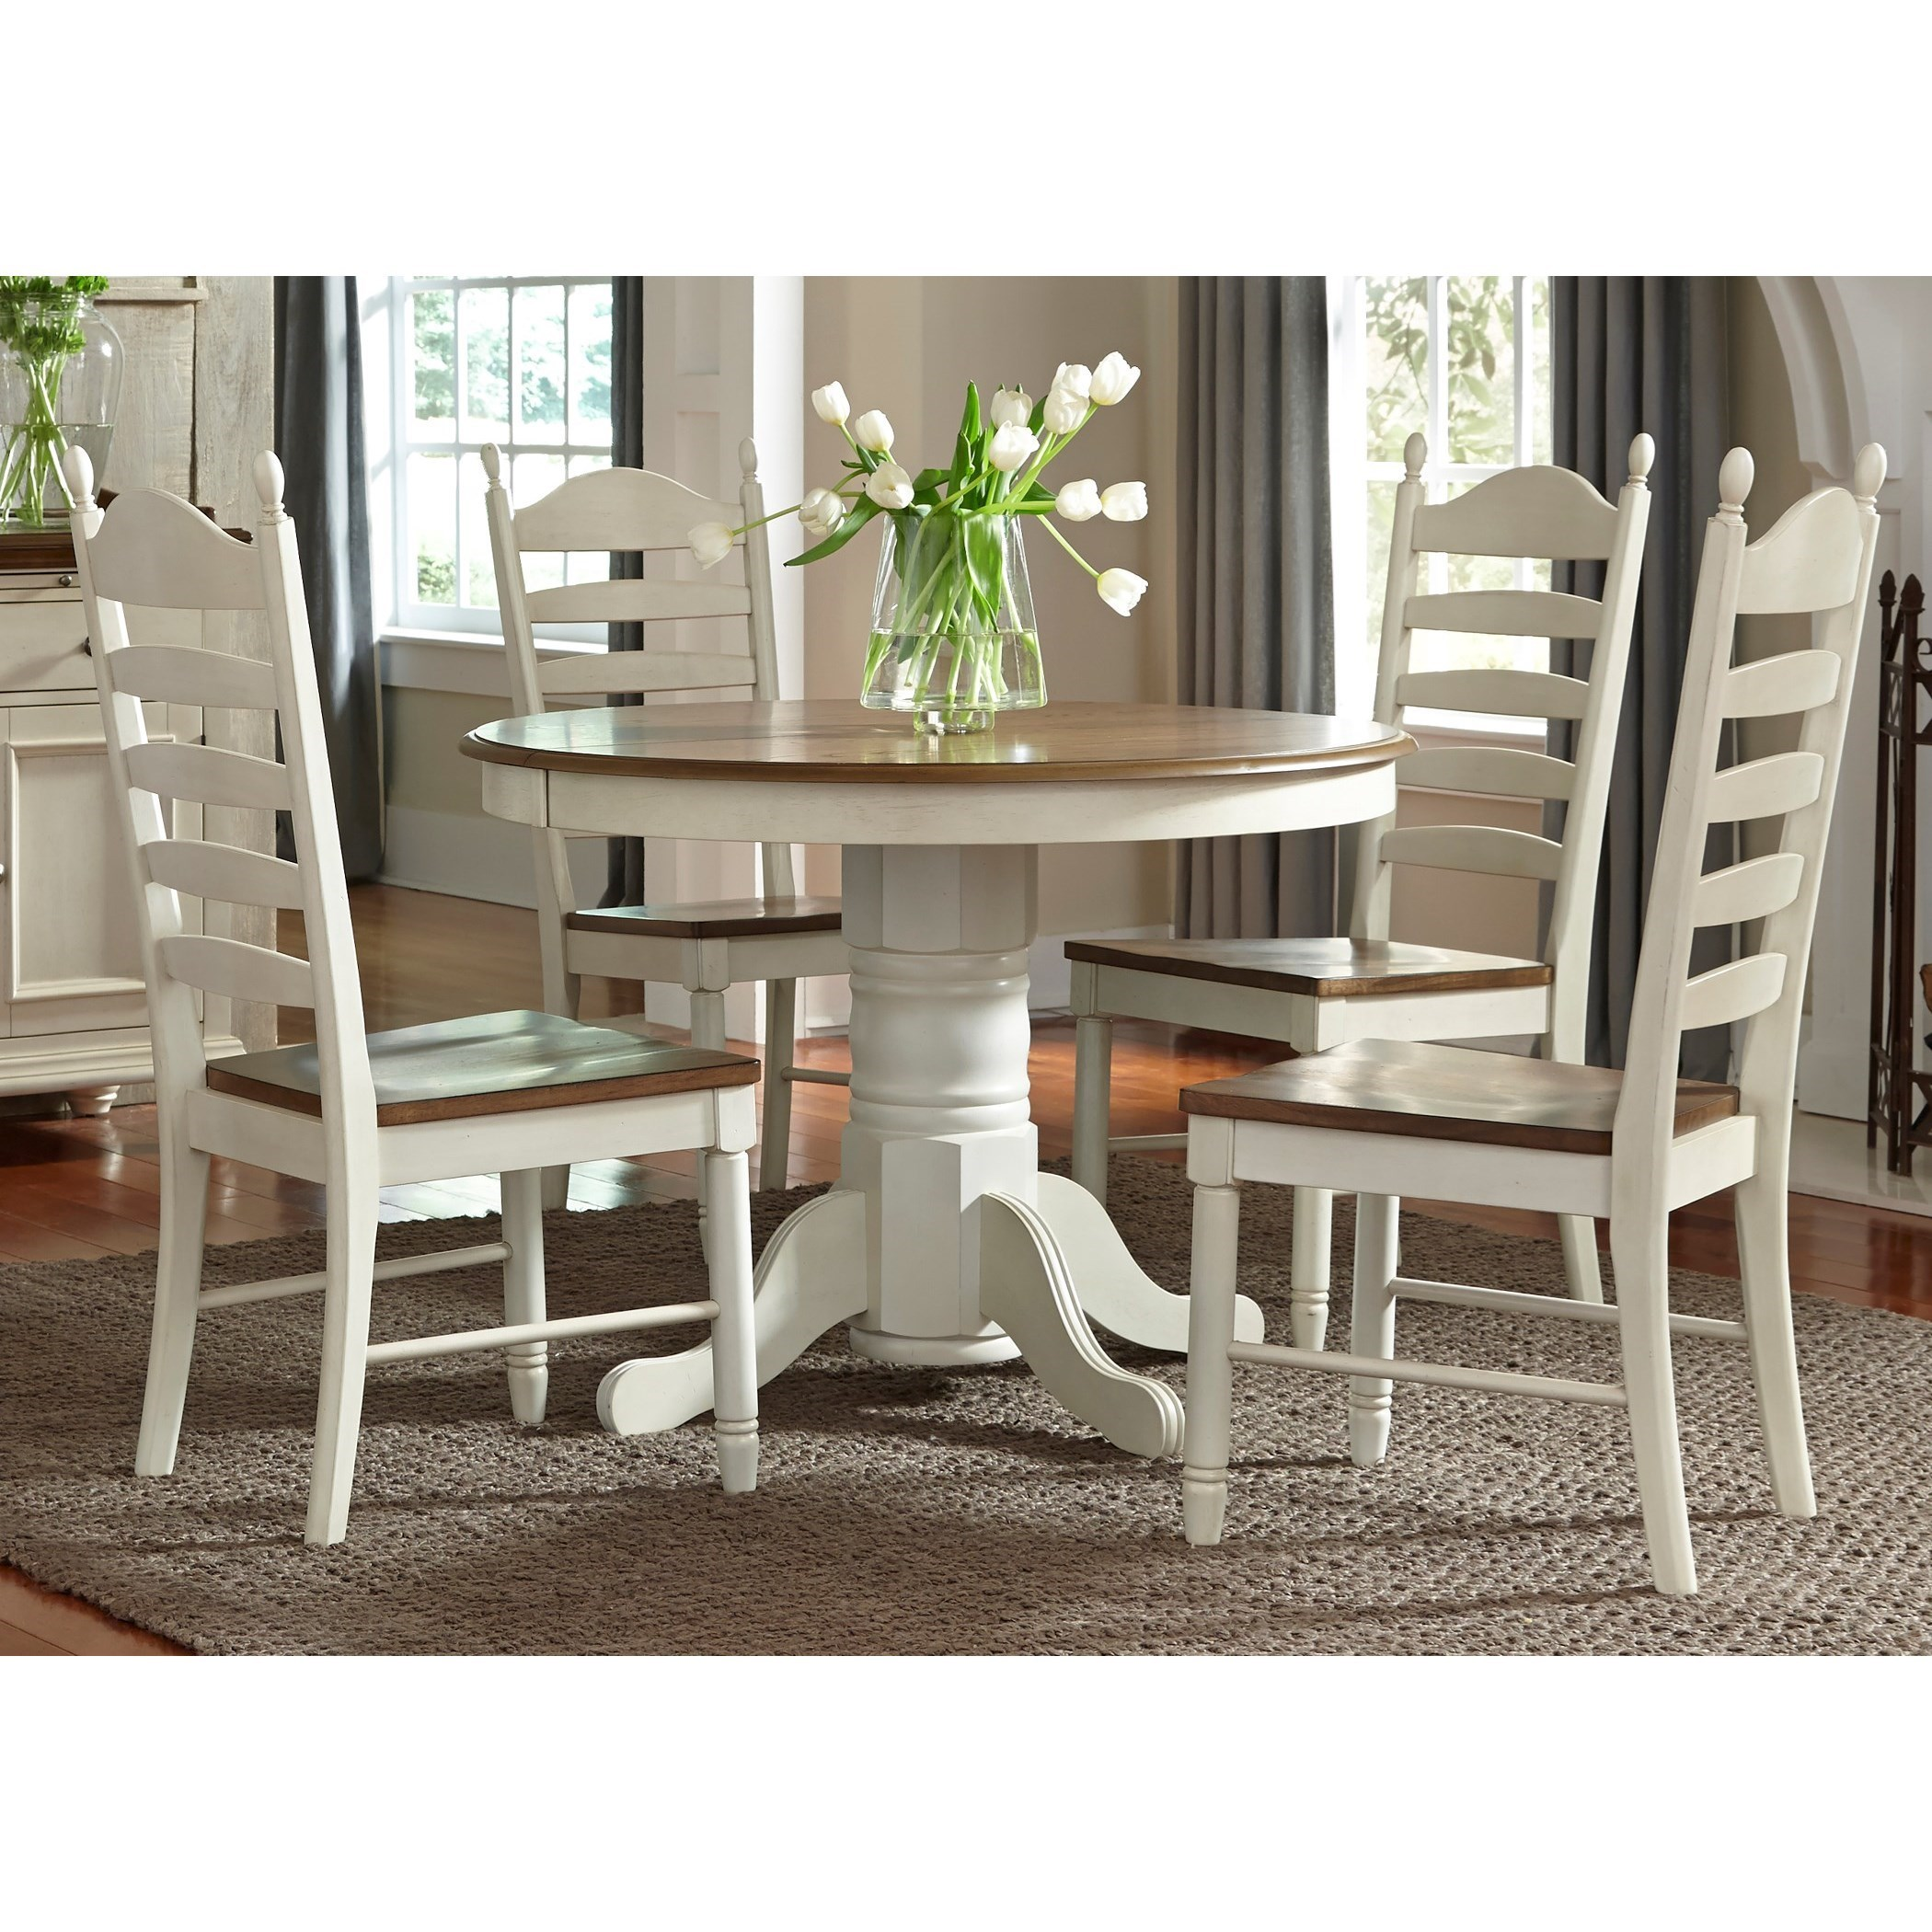 pedestal table with leaf solid wood liberty furniture springfield diningpedestal table dining pedestal with leaf hl